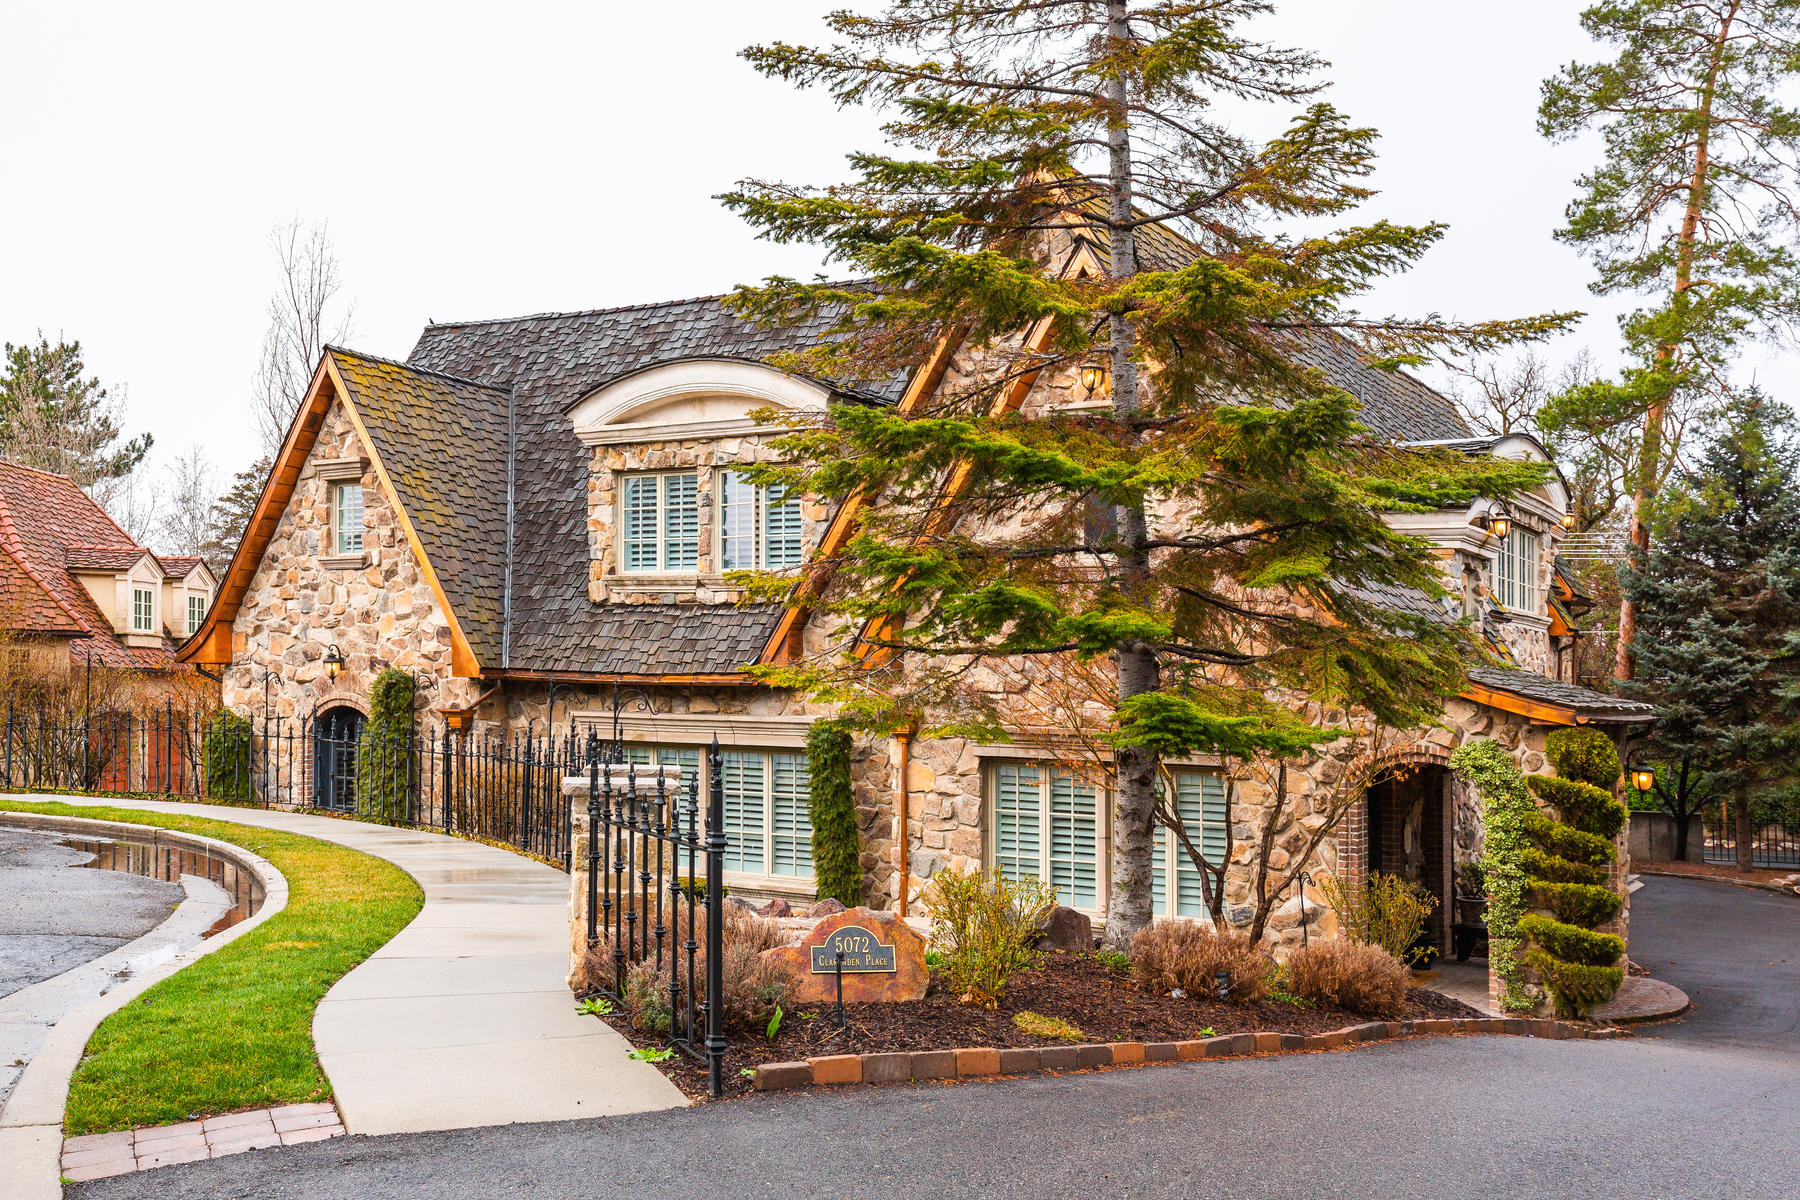 Single Family Homes for Sale at Stunning Holladay Masterpiece 5072 S Clarenden Pl Holladay, Utah 84117 United States